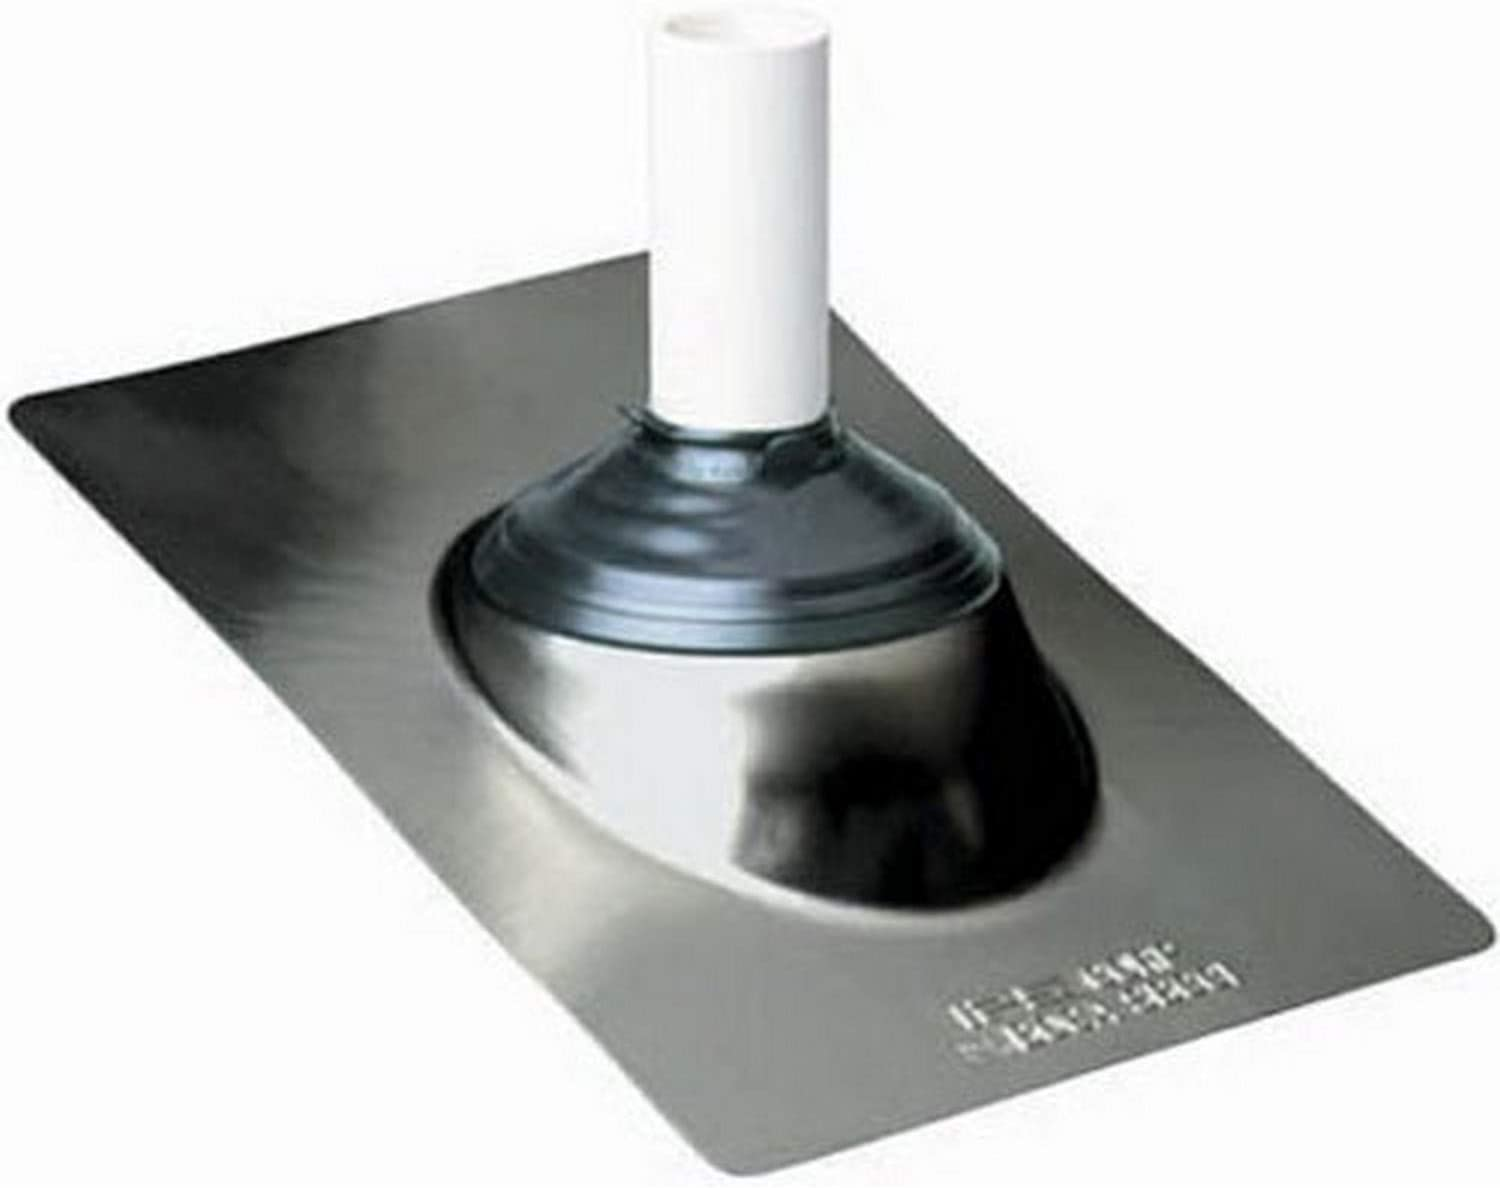 IPS CORPORATION 81710 Super beauty product restock quality top! Roof Flashing Popular brand 3-in-1